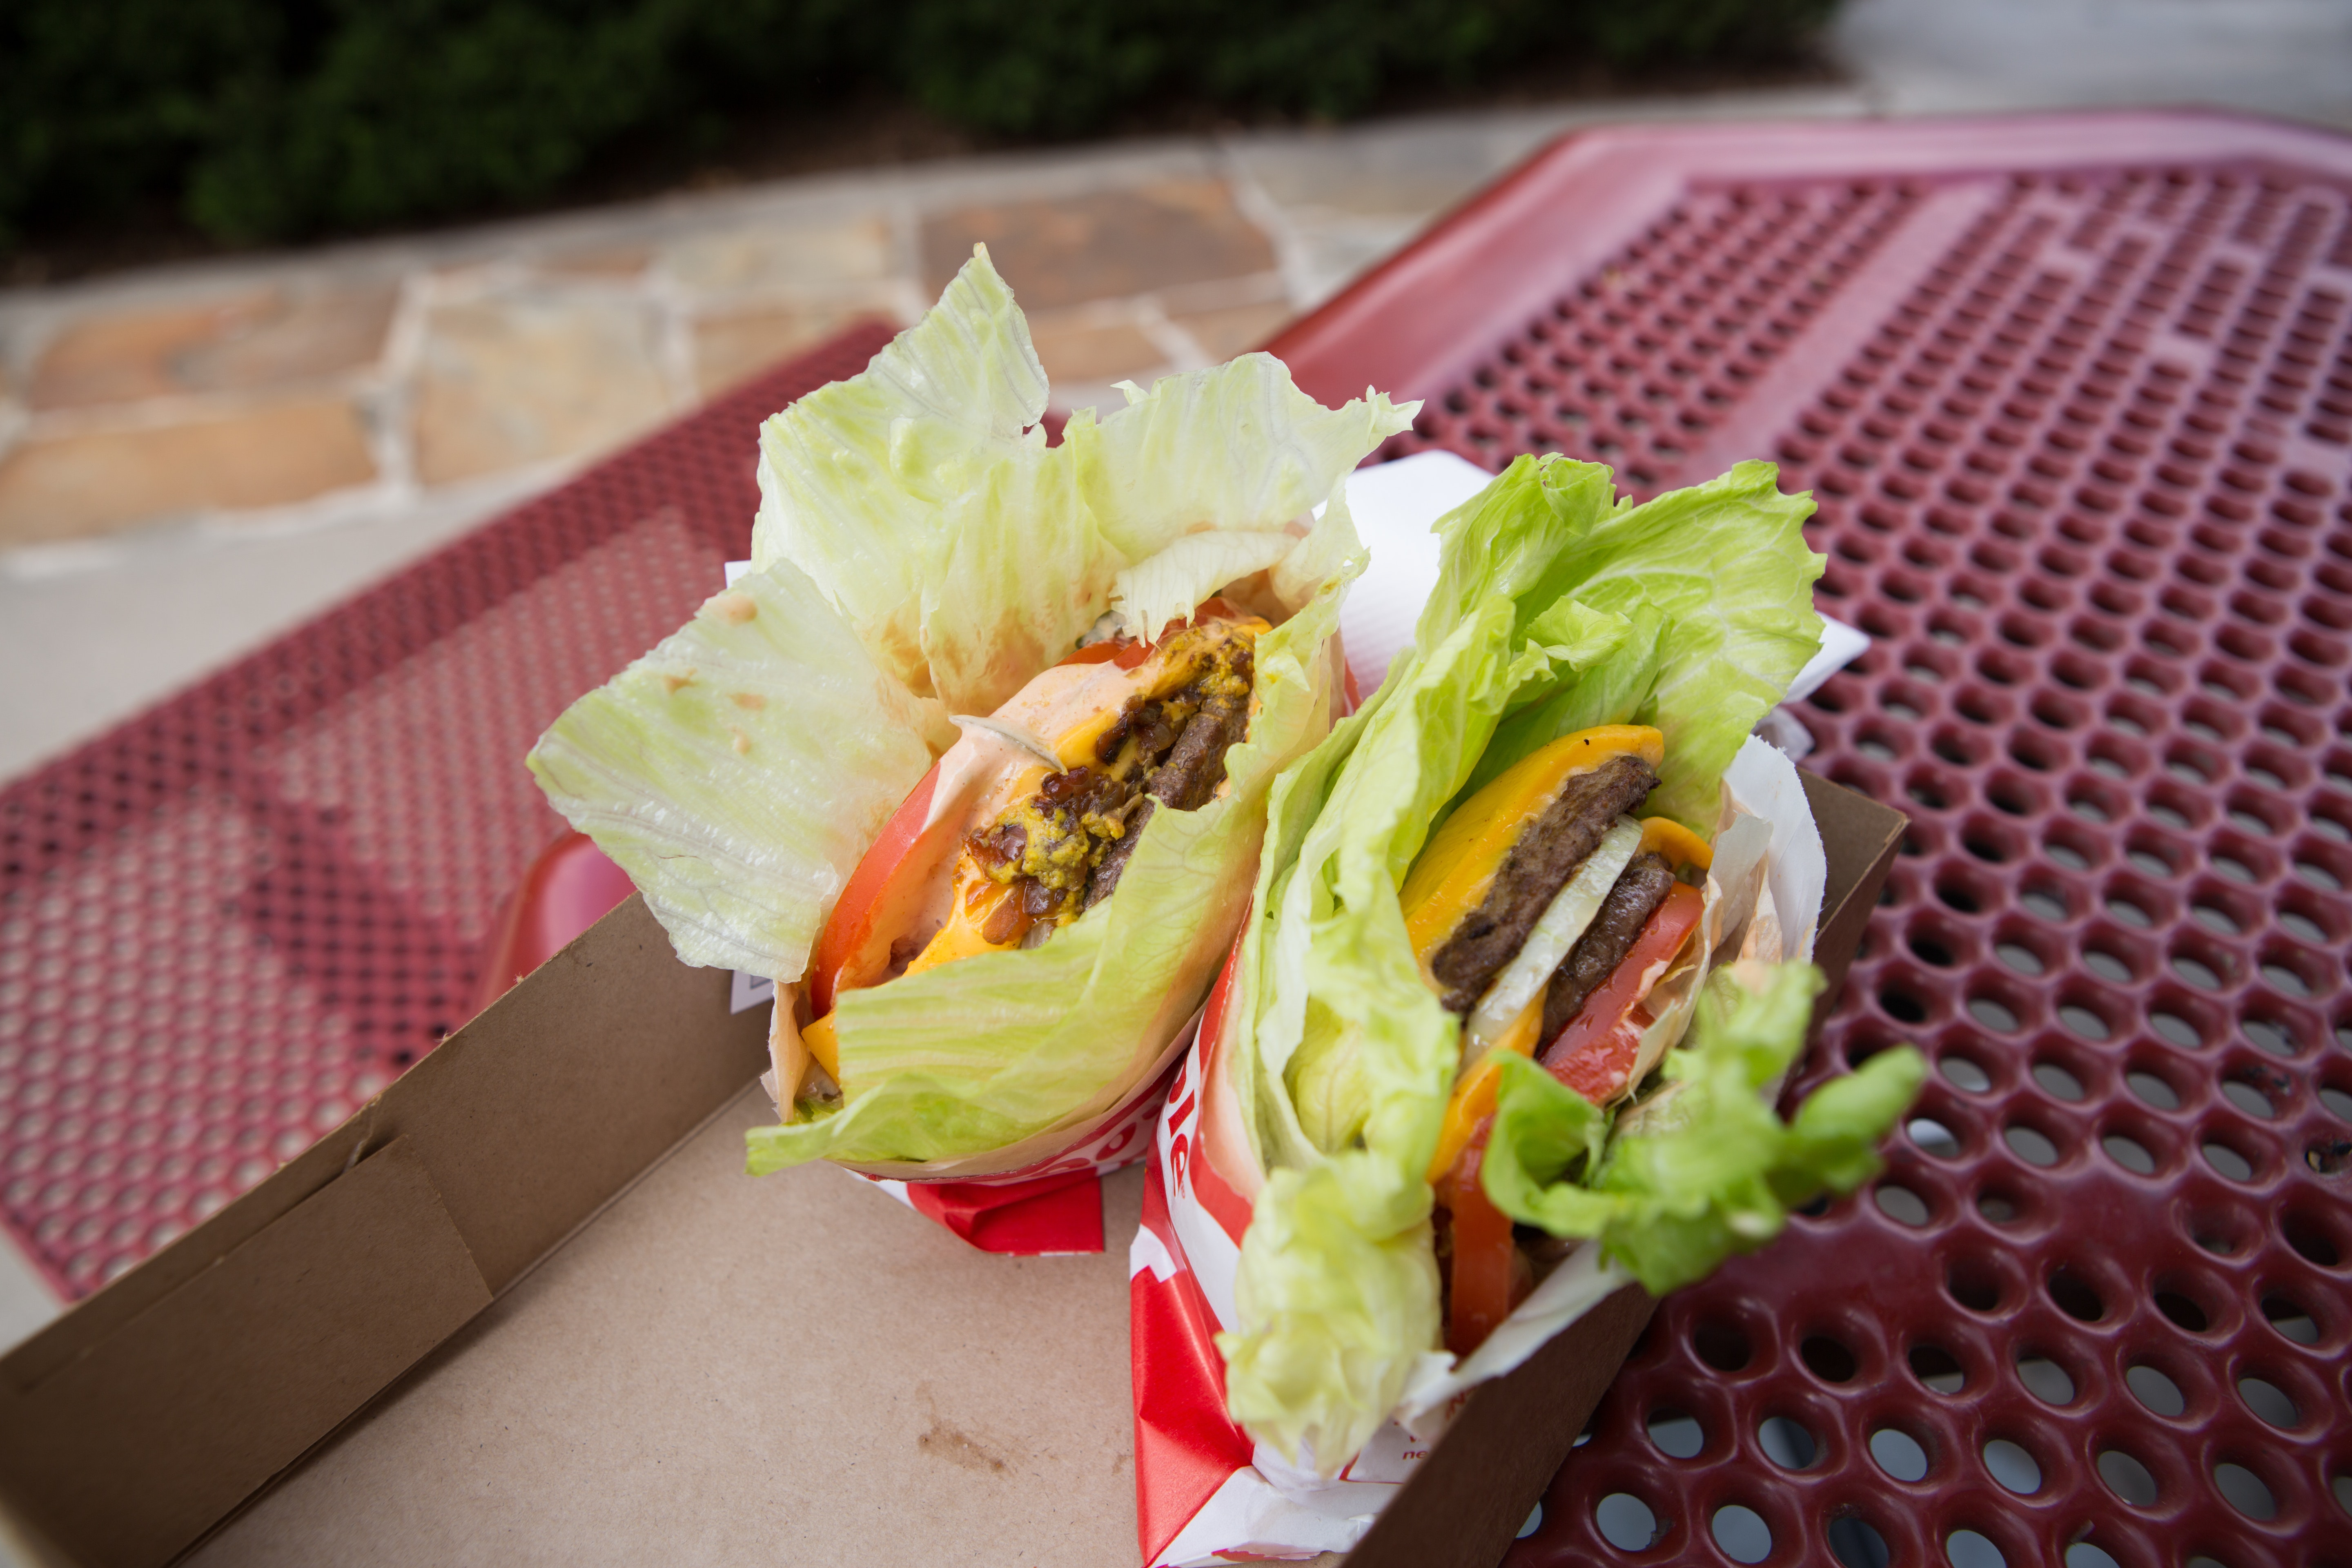 Top 11 Fast Food Options For Keto Low Carb In The U S Diet Doctor